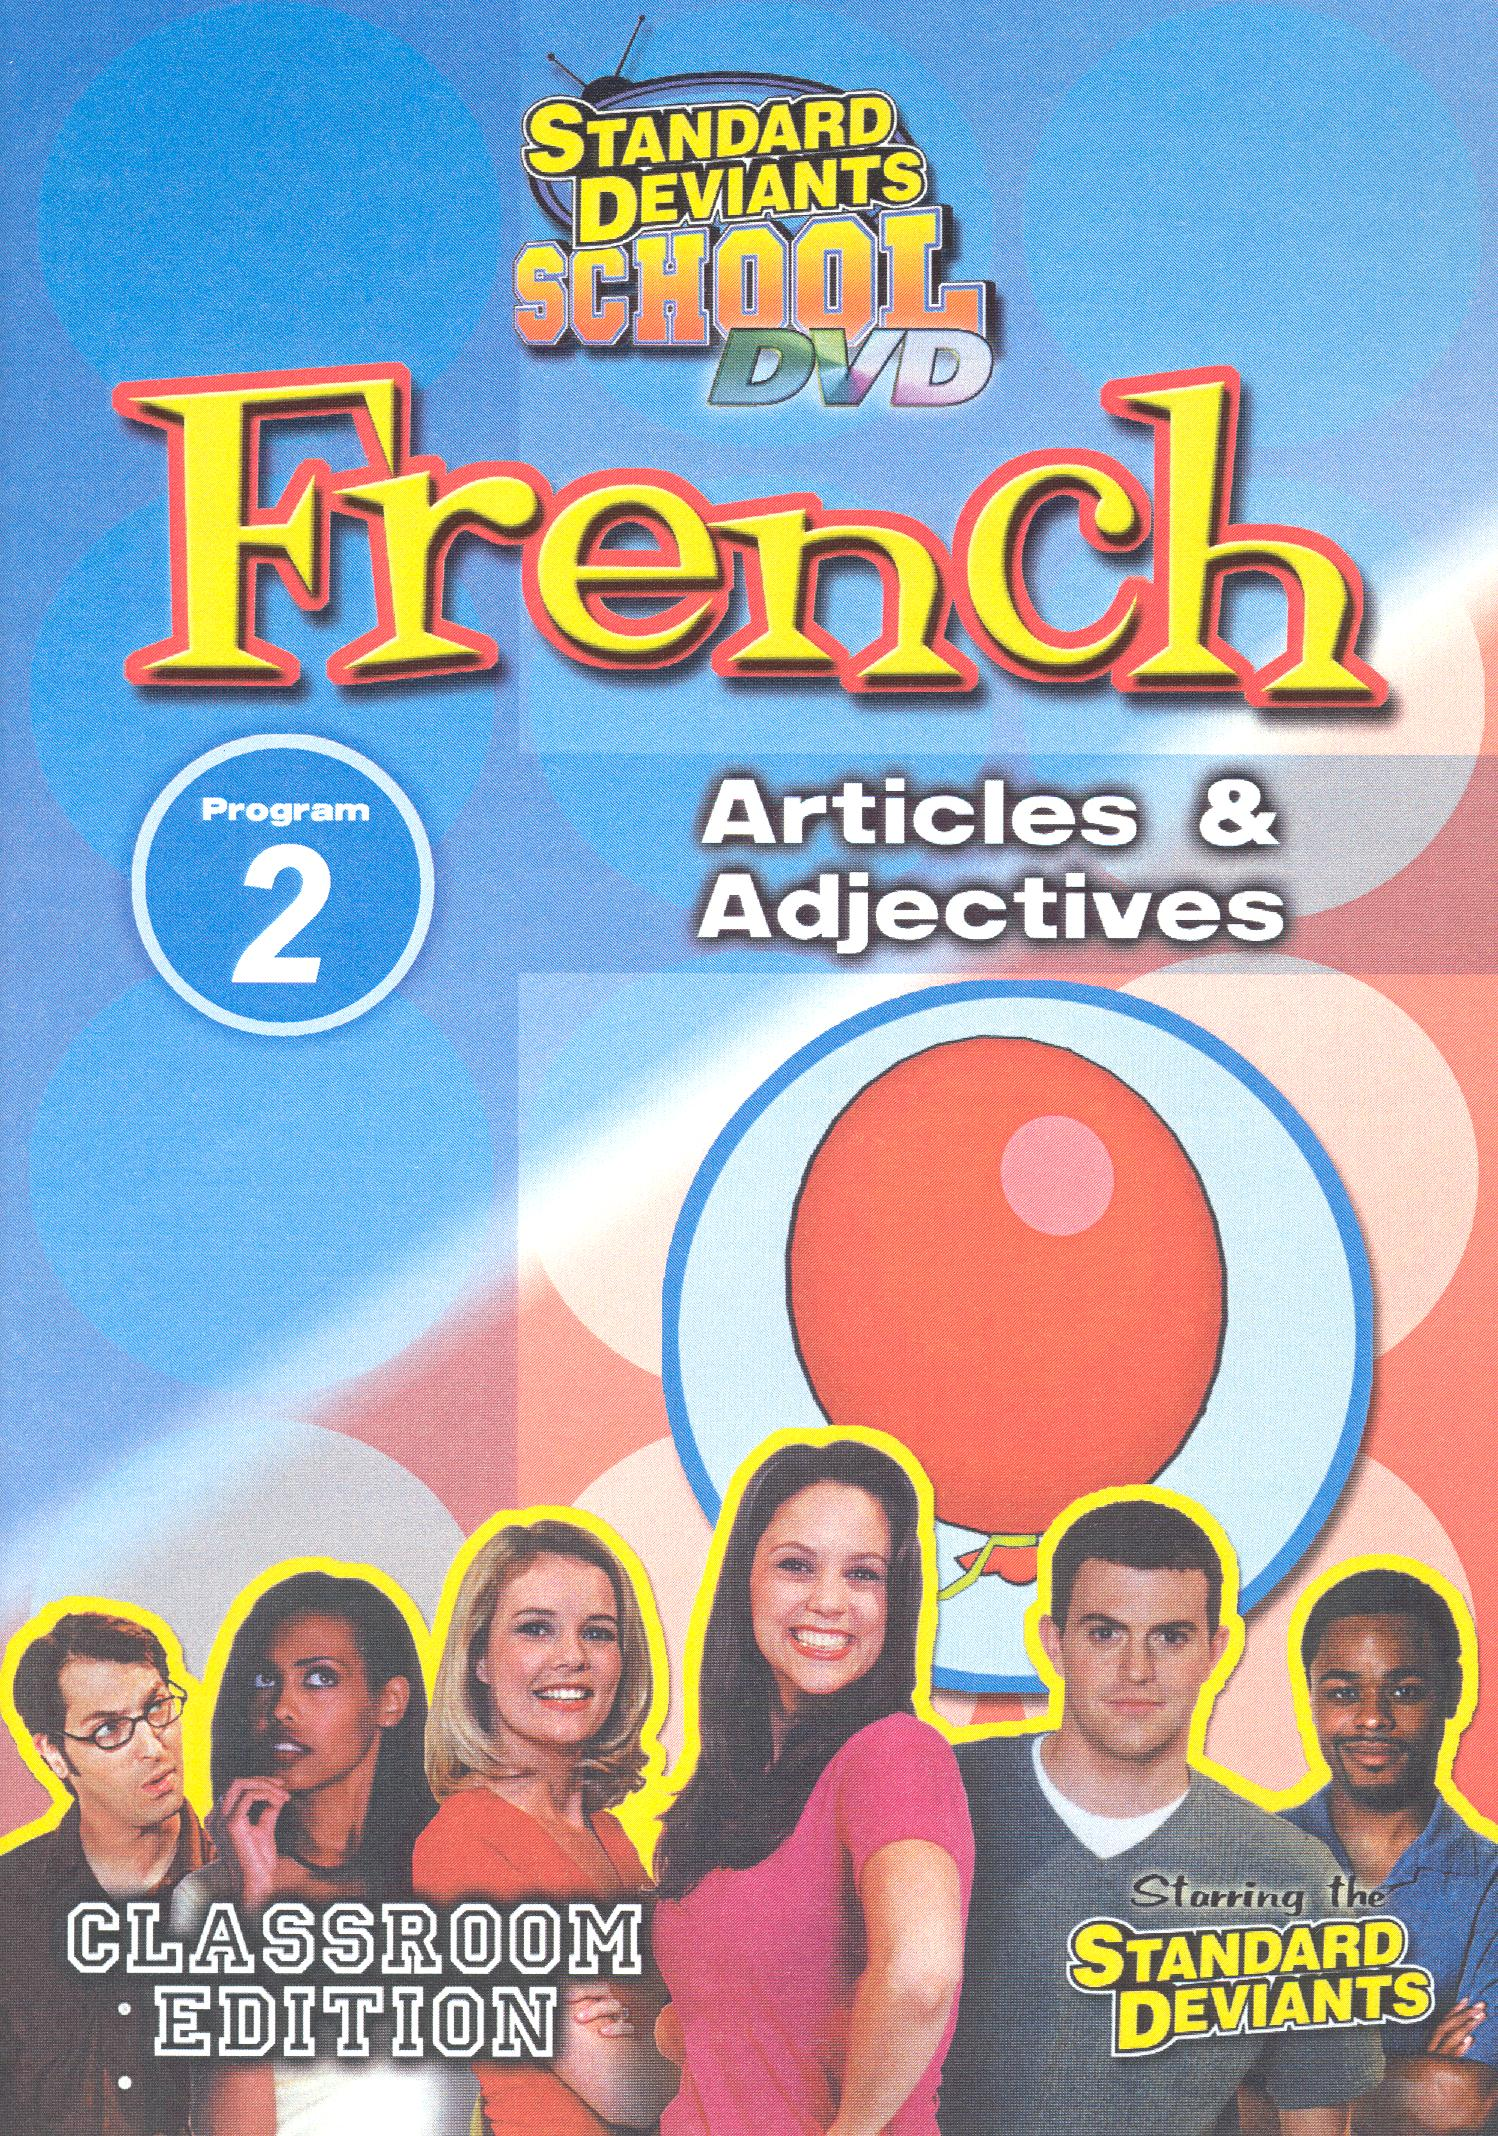 Standard Deviants School: French, Program 2